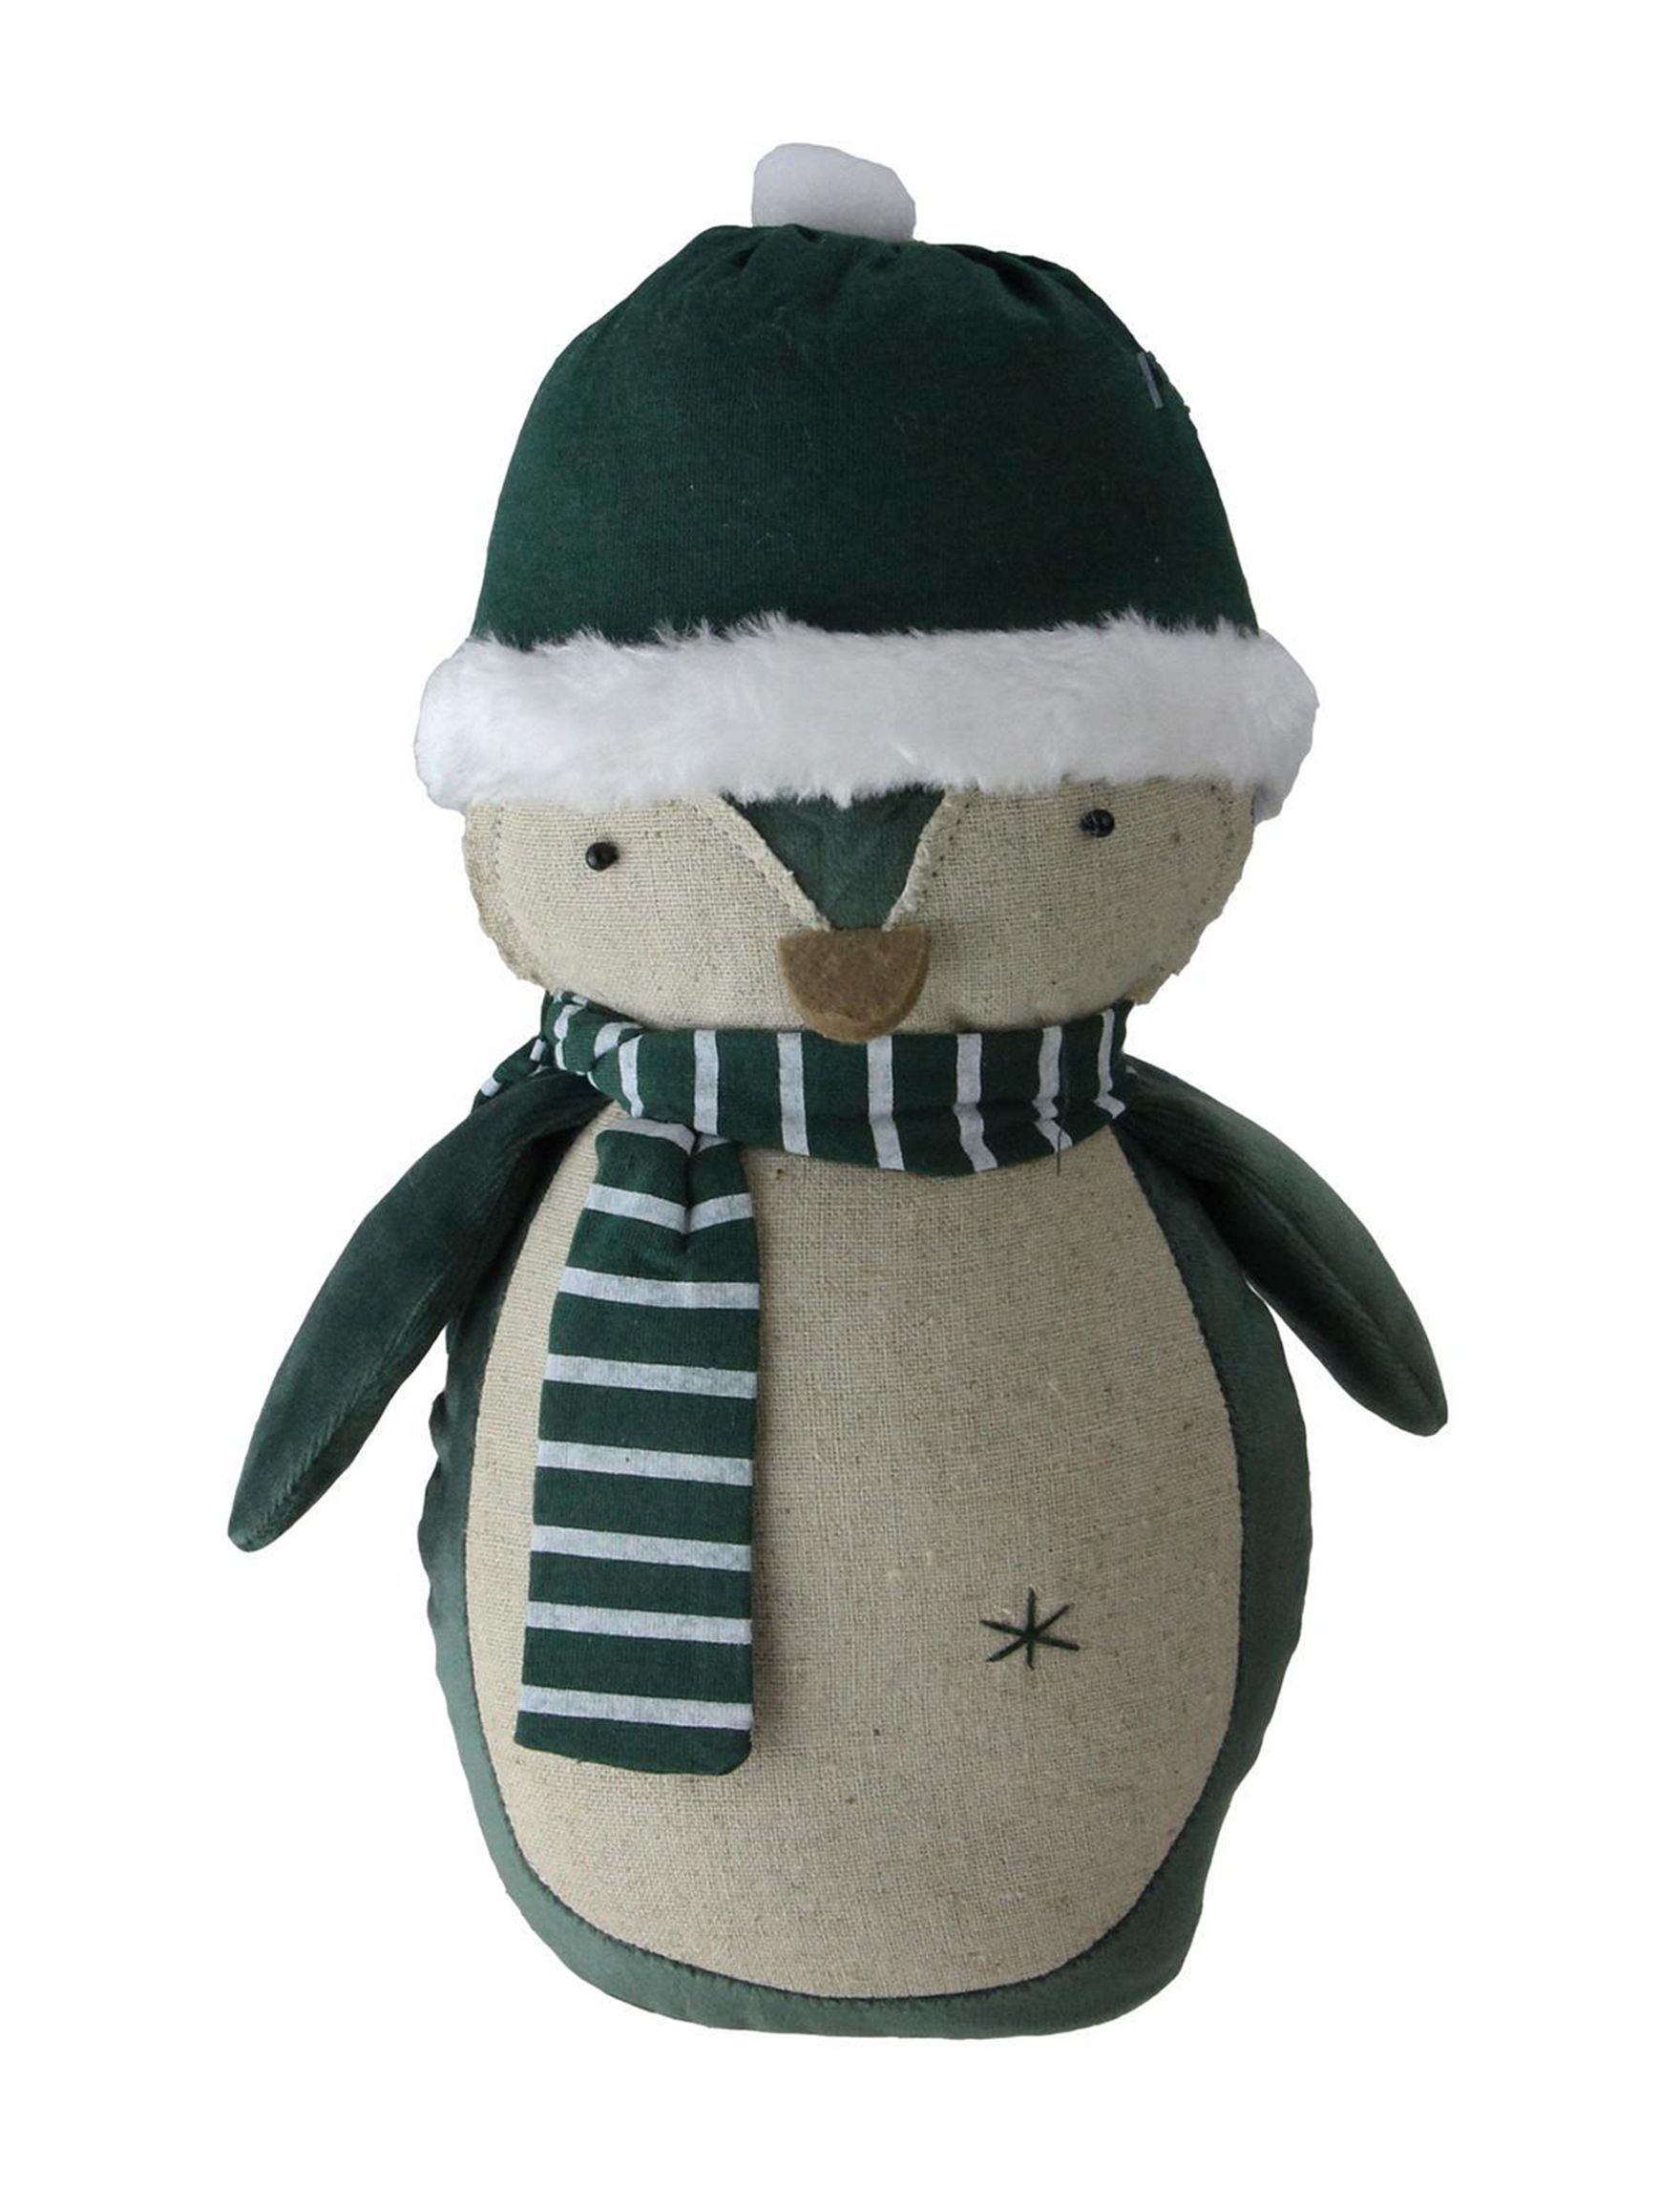 Northlight Green / White Decorative Objects Holiday Decor Home Accents